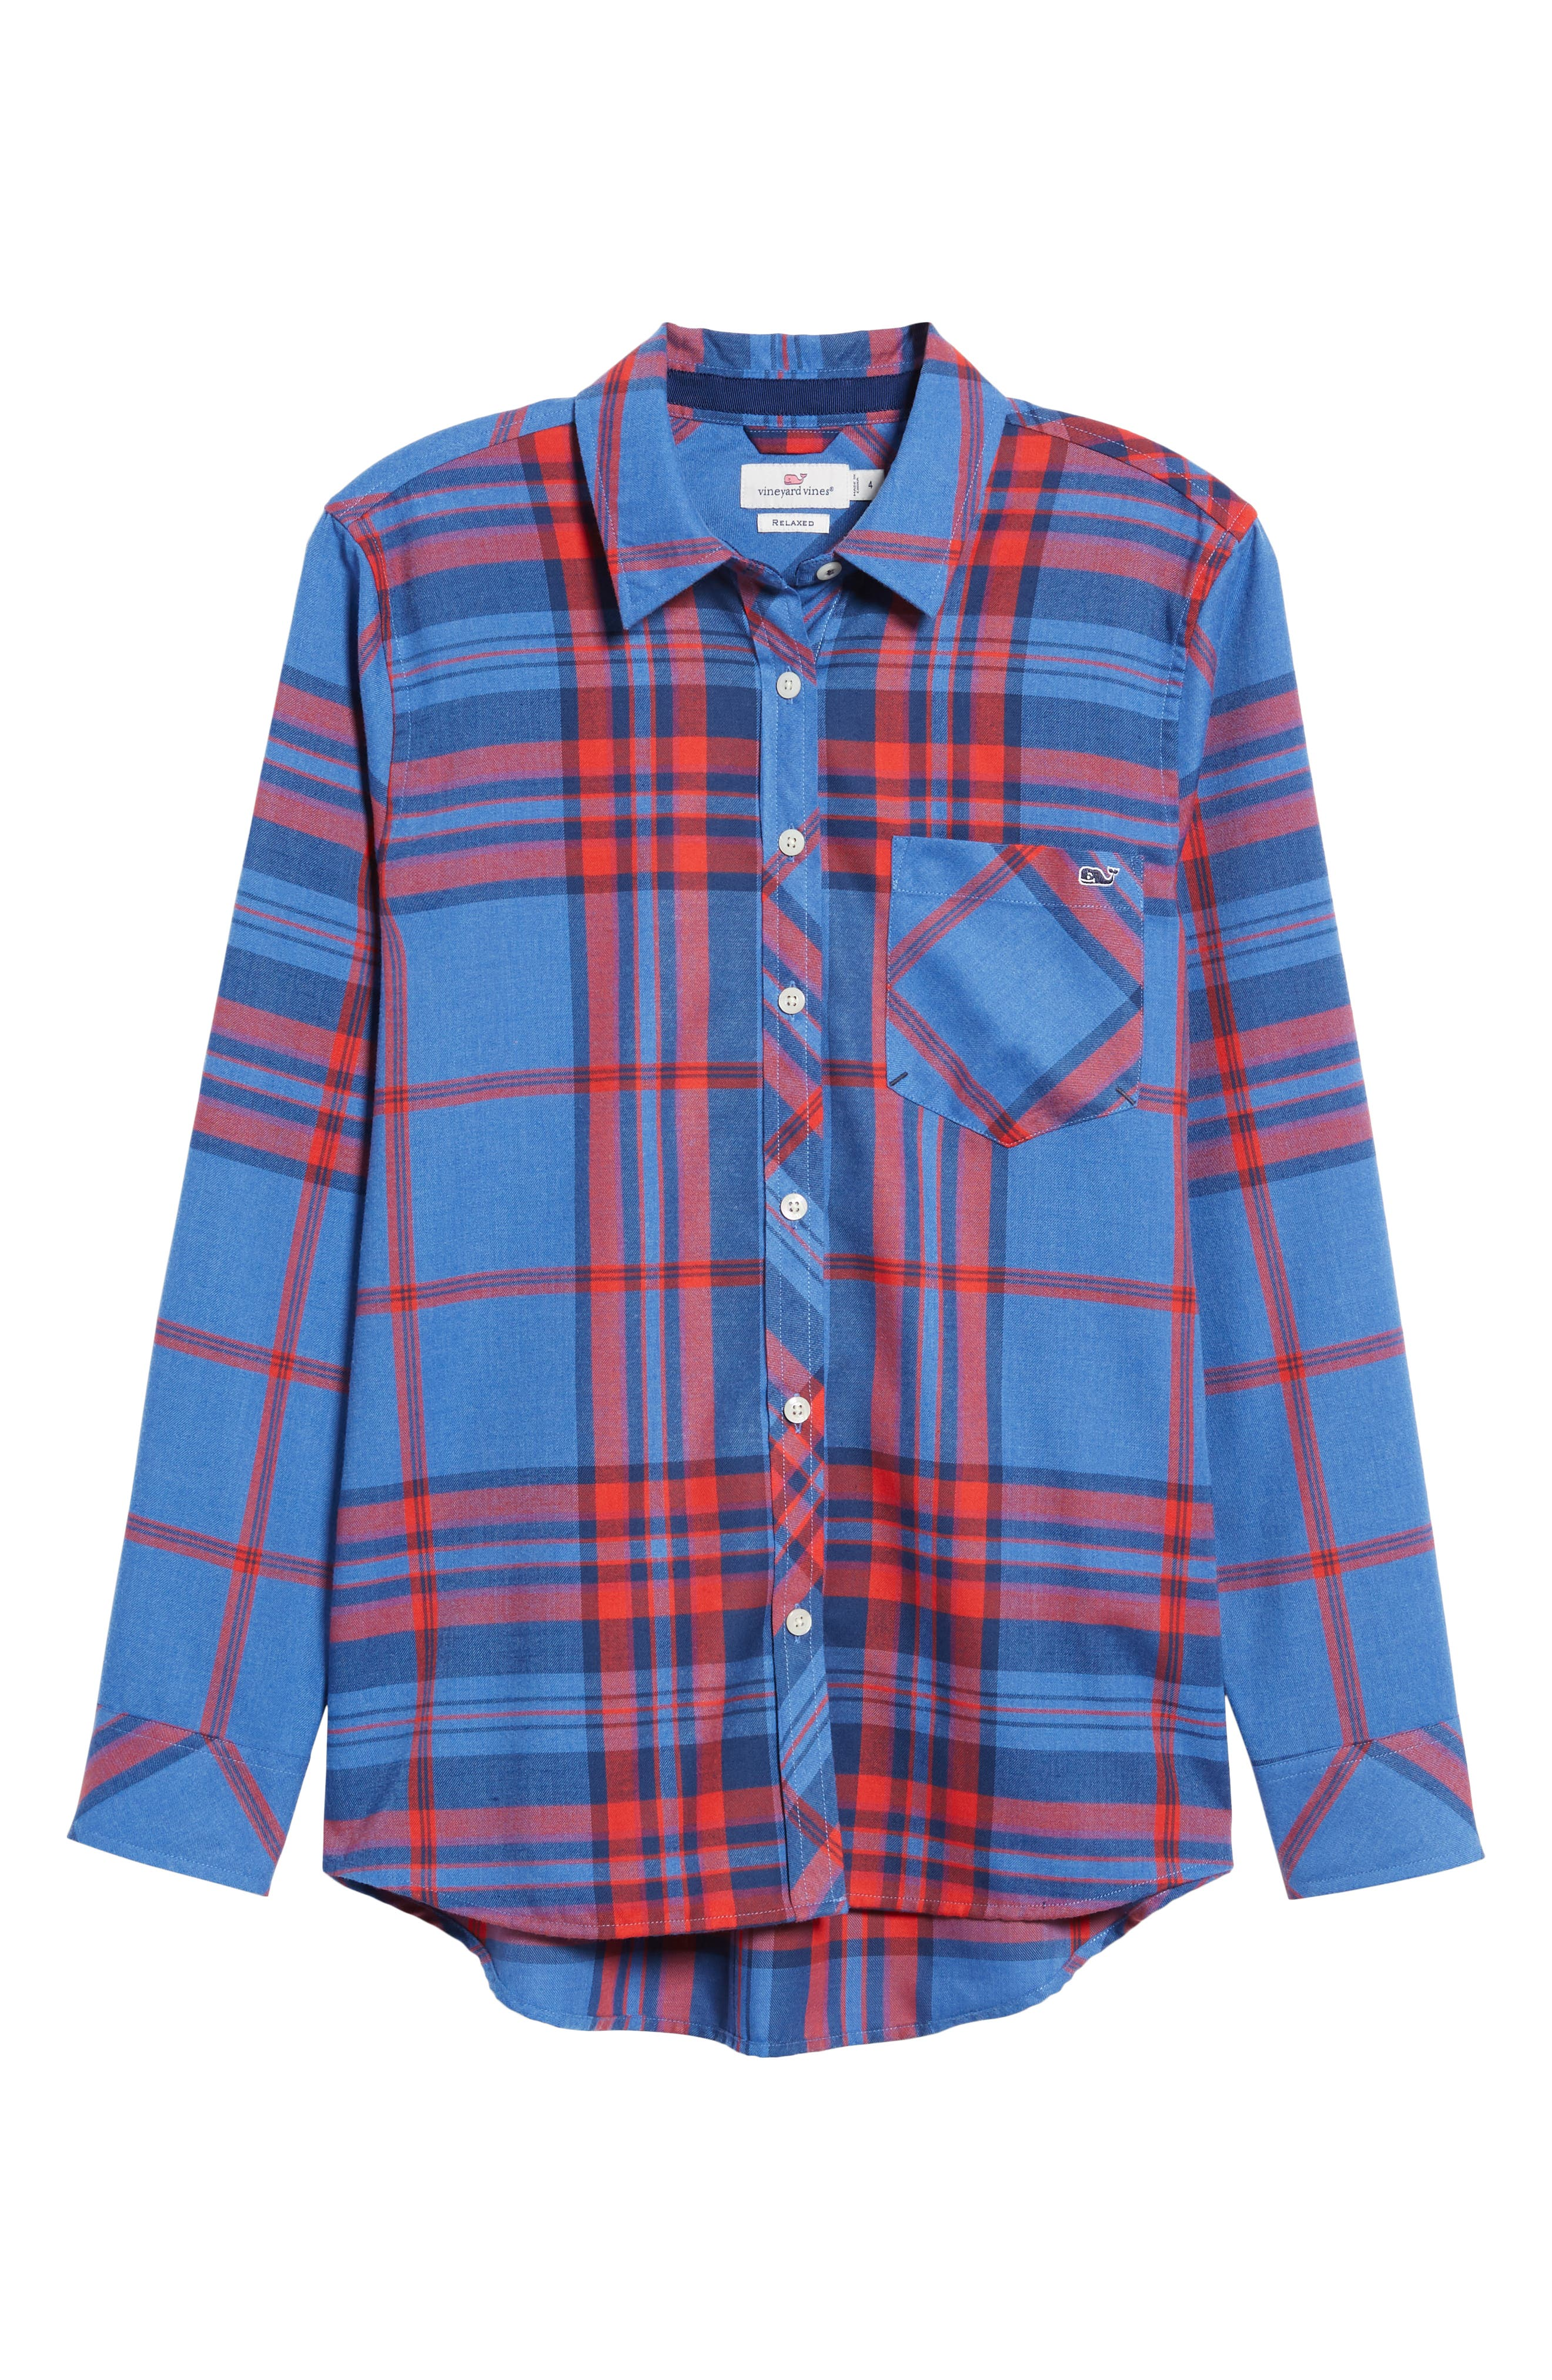 Northern Plaid Performance Flannel Shirt,                             Alternate thumbnail 6, color,                             DAZZLING BLUE